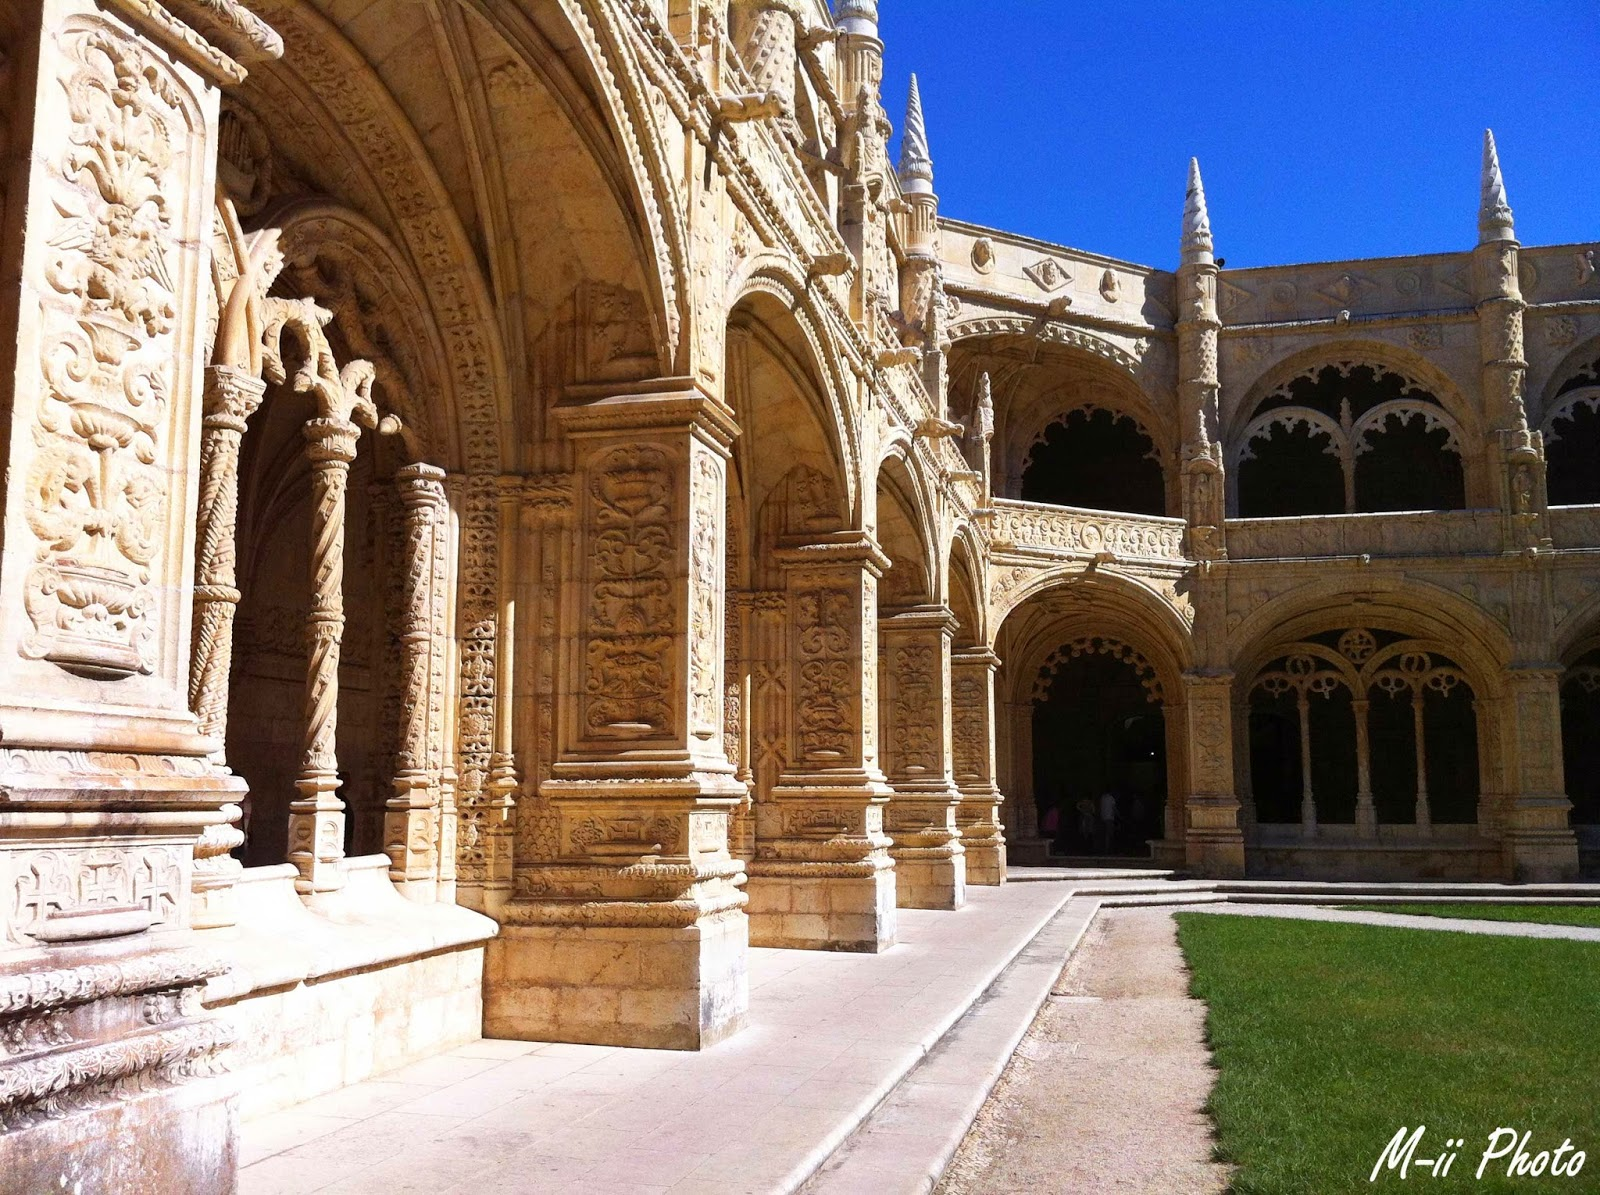 M-ii Photo : 10 choses à faire à Lisbonne  Monastere dos Jeronimos